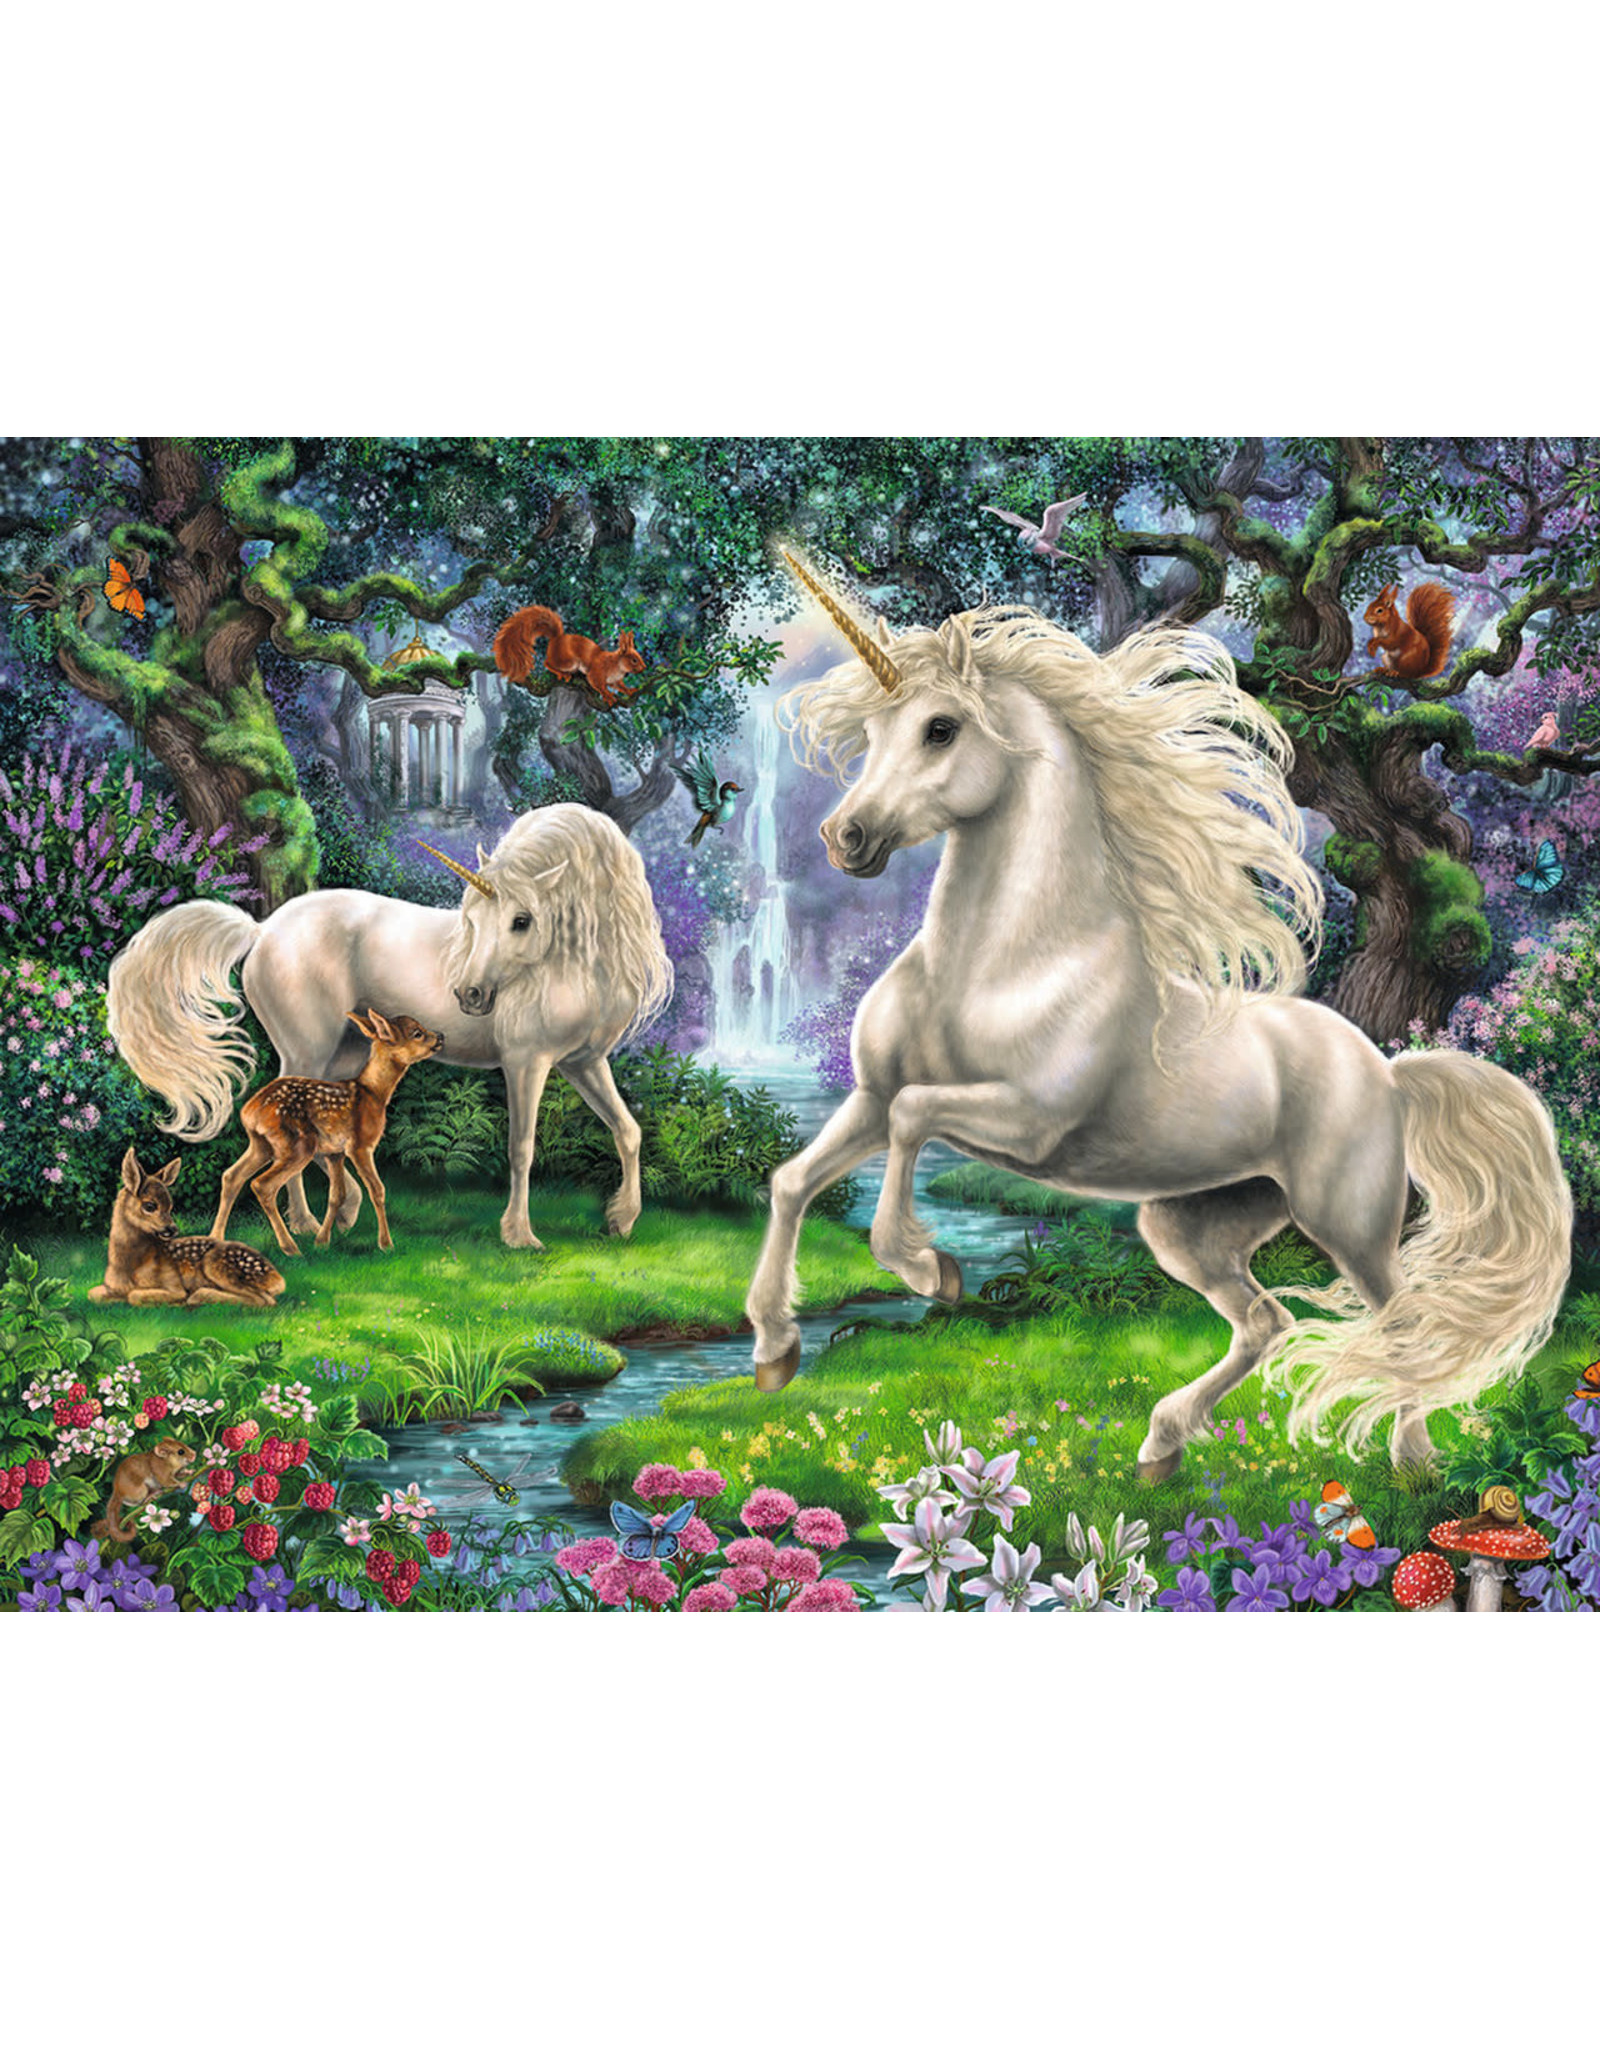 Ravensburger 200 pcs. Mystical Unicorns Puzzle